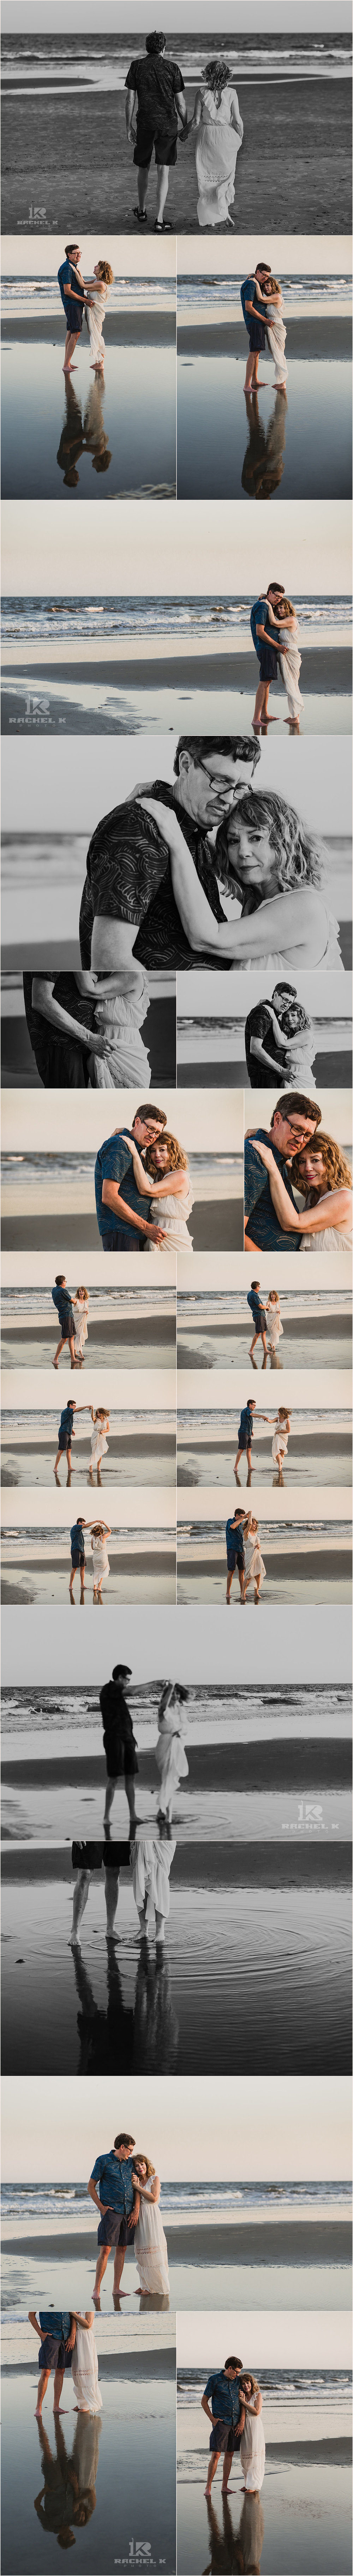 Folly beach anniversary session by Rachel K Photo